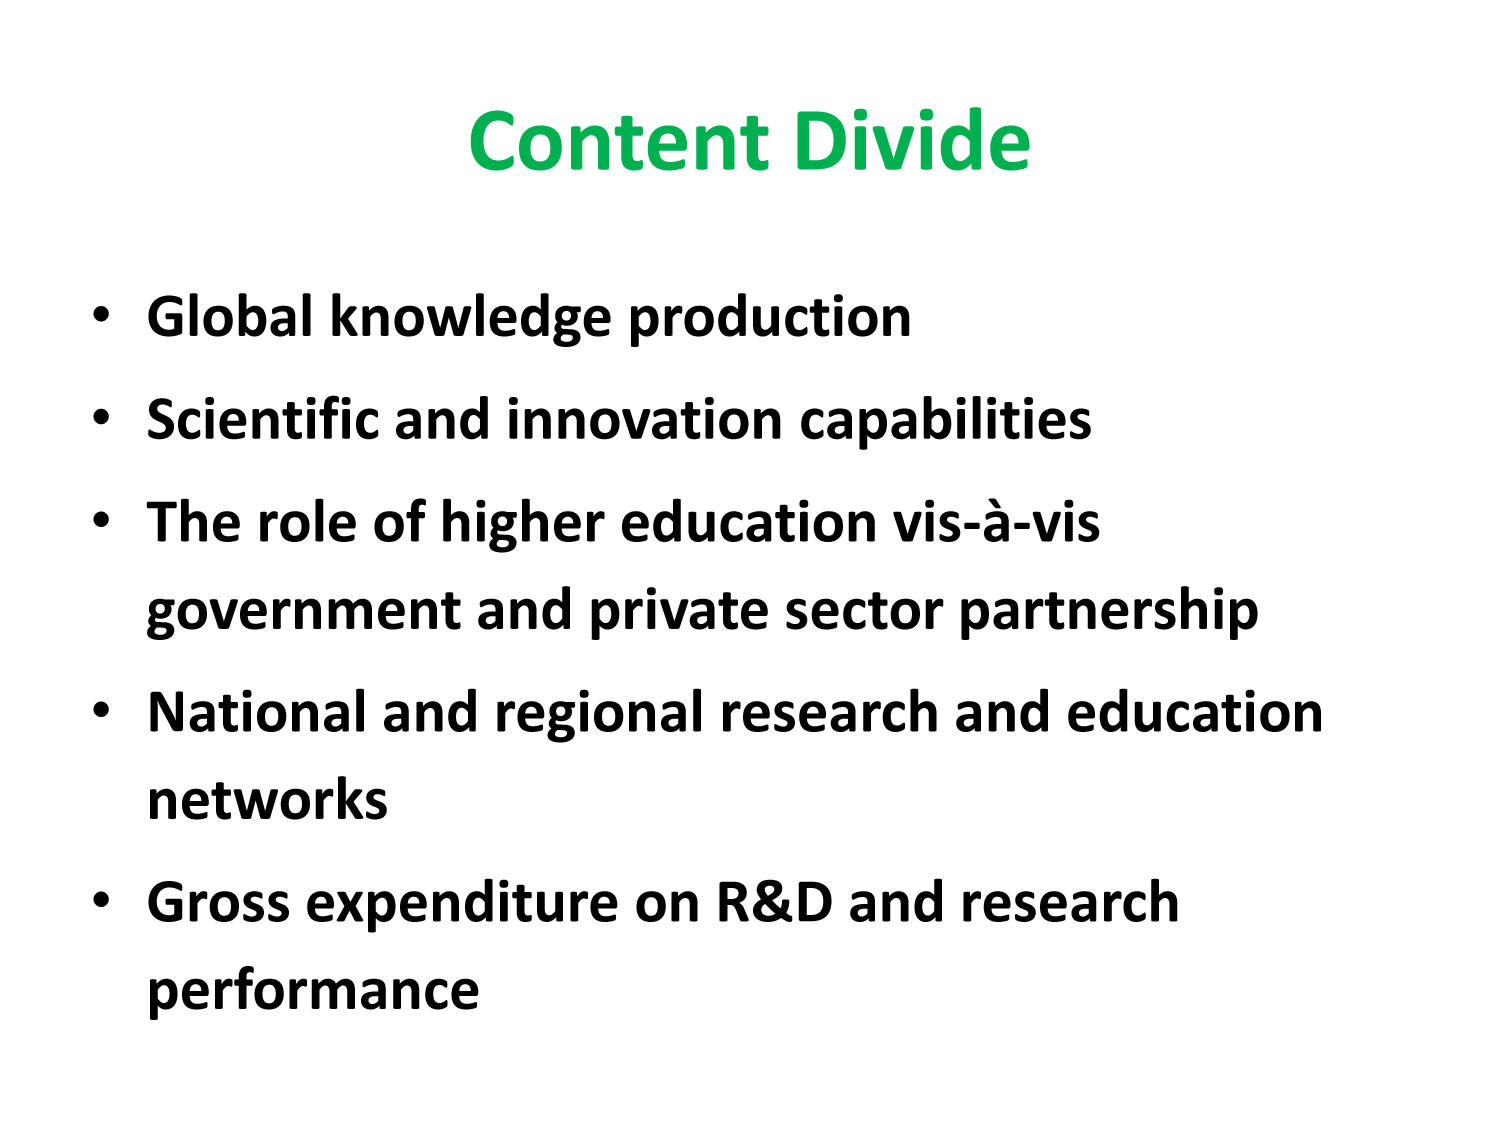 Content Divide: Africa and the Global Knowledge Footprint                                                                                                      [Sequence #]: 2 of 24